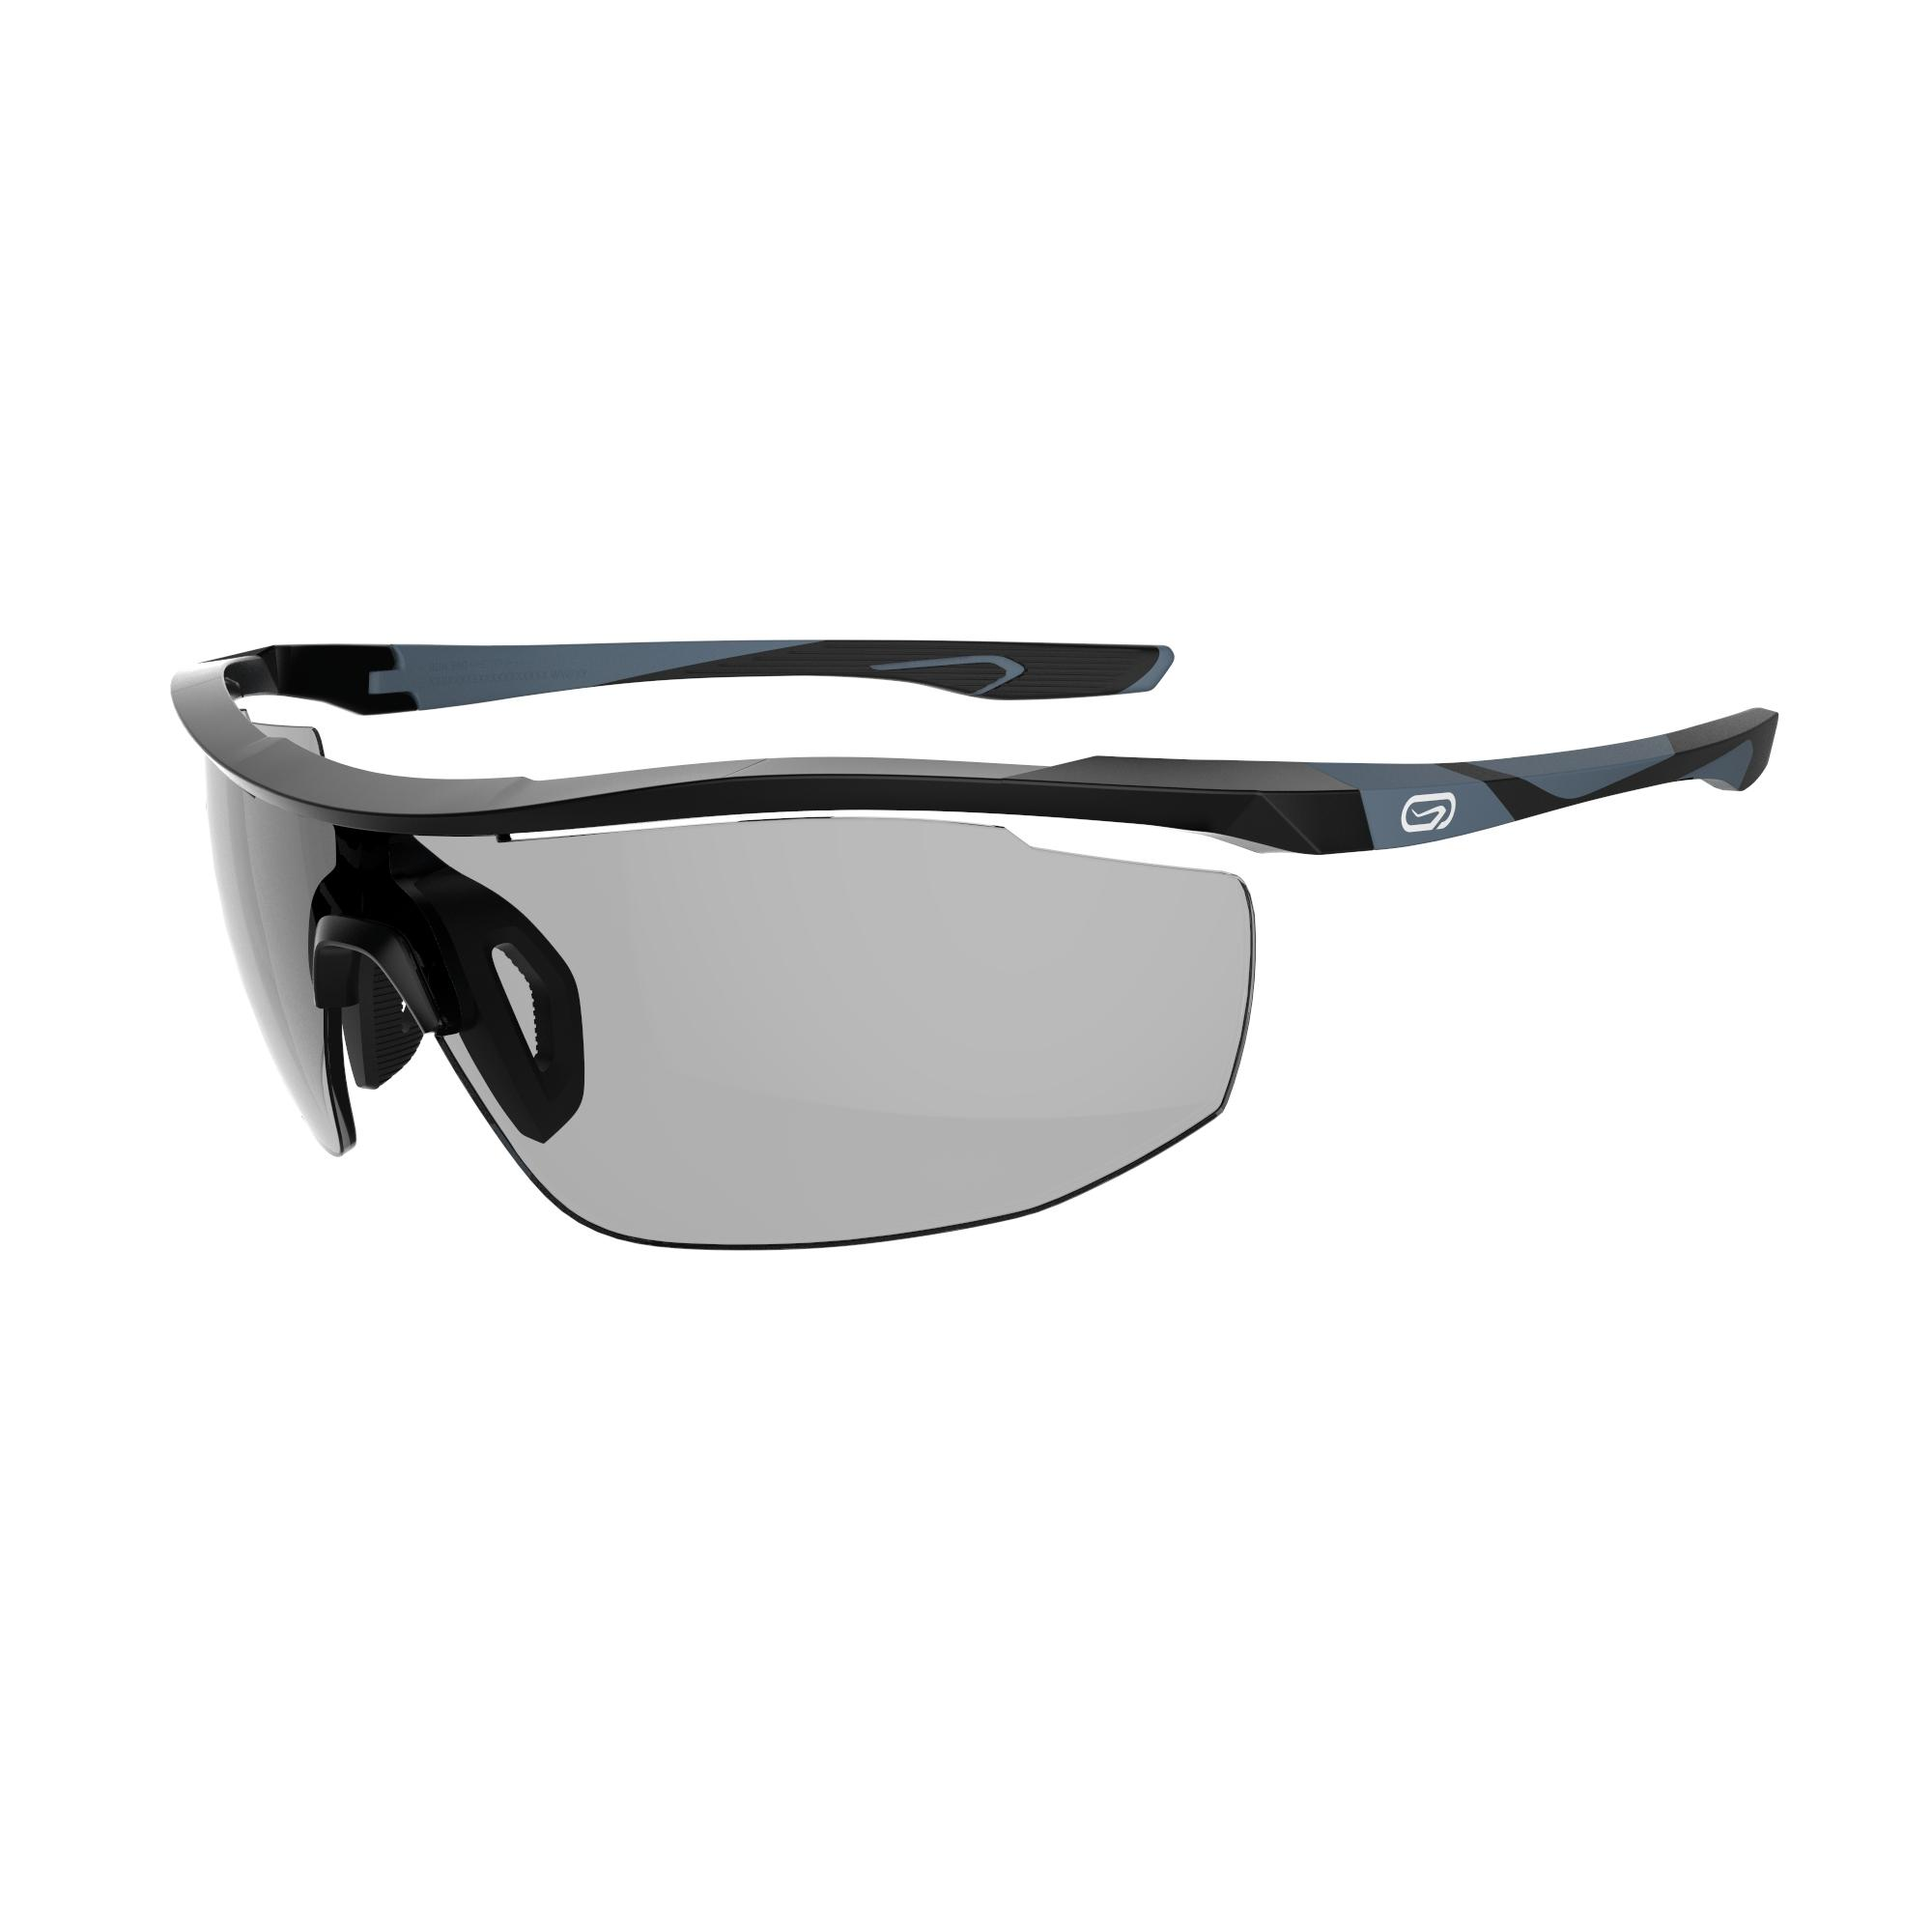 Run 560 Adult Running Photochromic Glasses Cat. 1 to 3 - Black and Grey